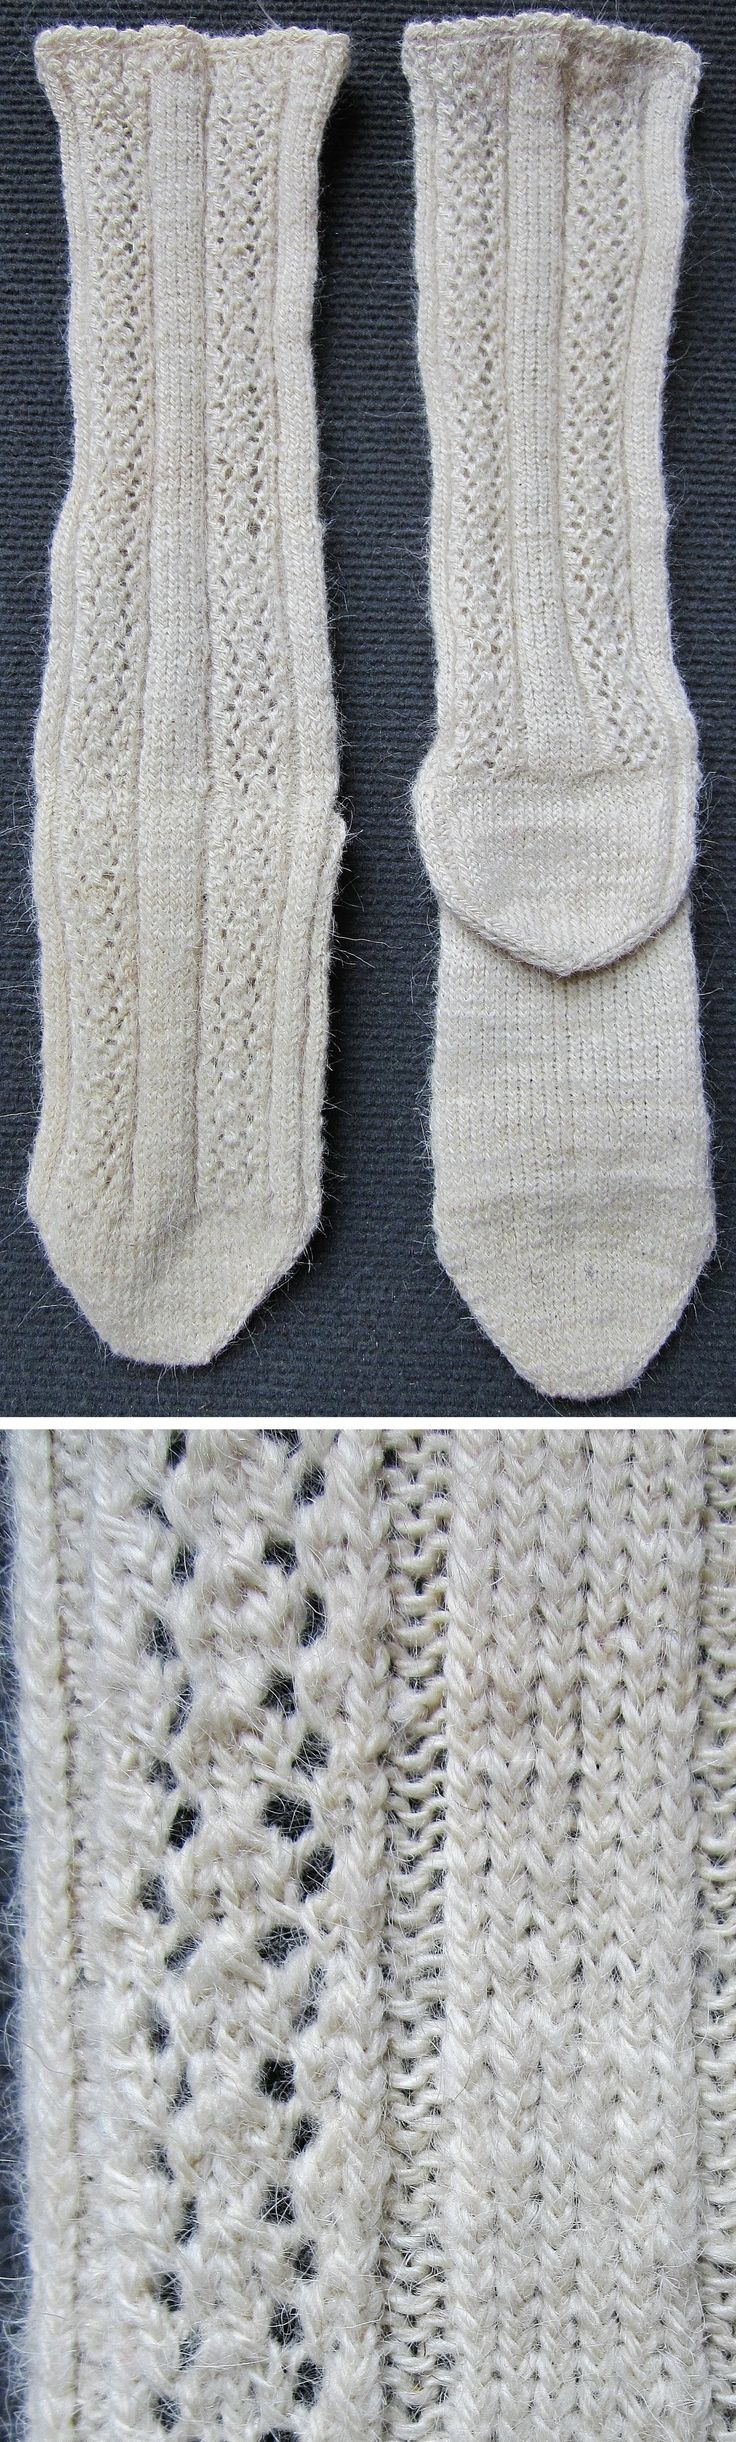 Traditional hand-knitted woollen socks, for women.   From NW Anatolia, ca. 1980s.  (Inv.n° çor199 - Kavak Costume Collection - Antwerpen/Belgium).